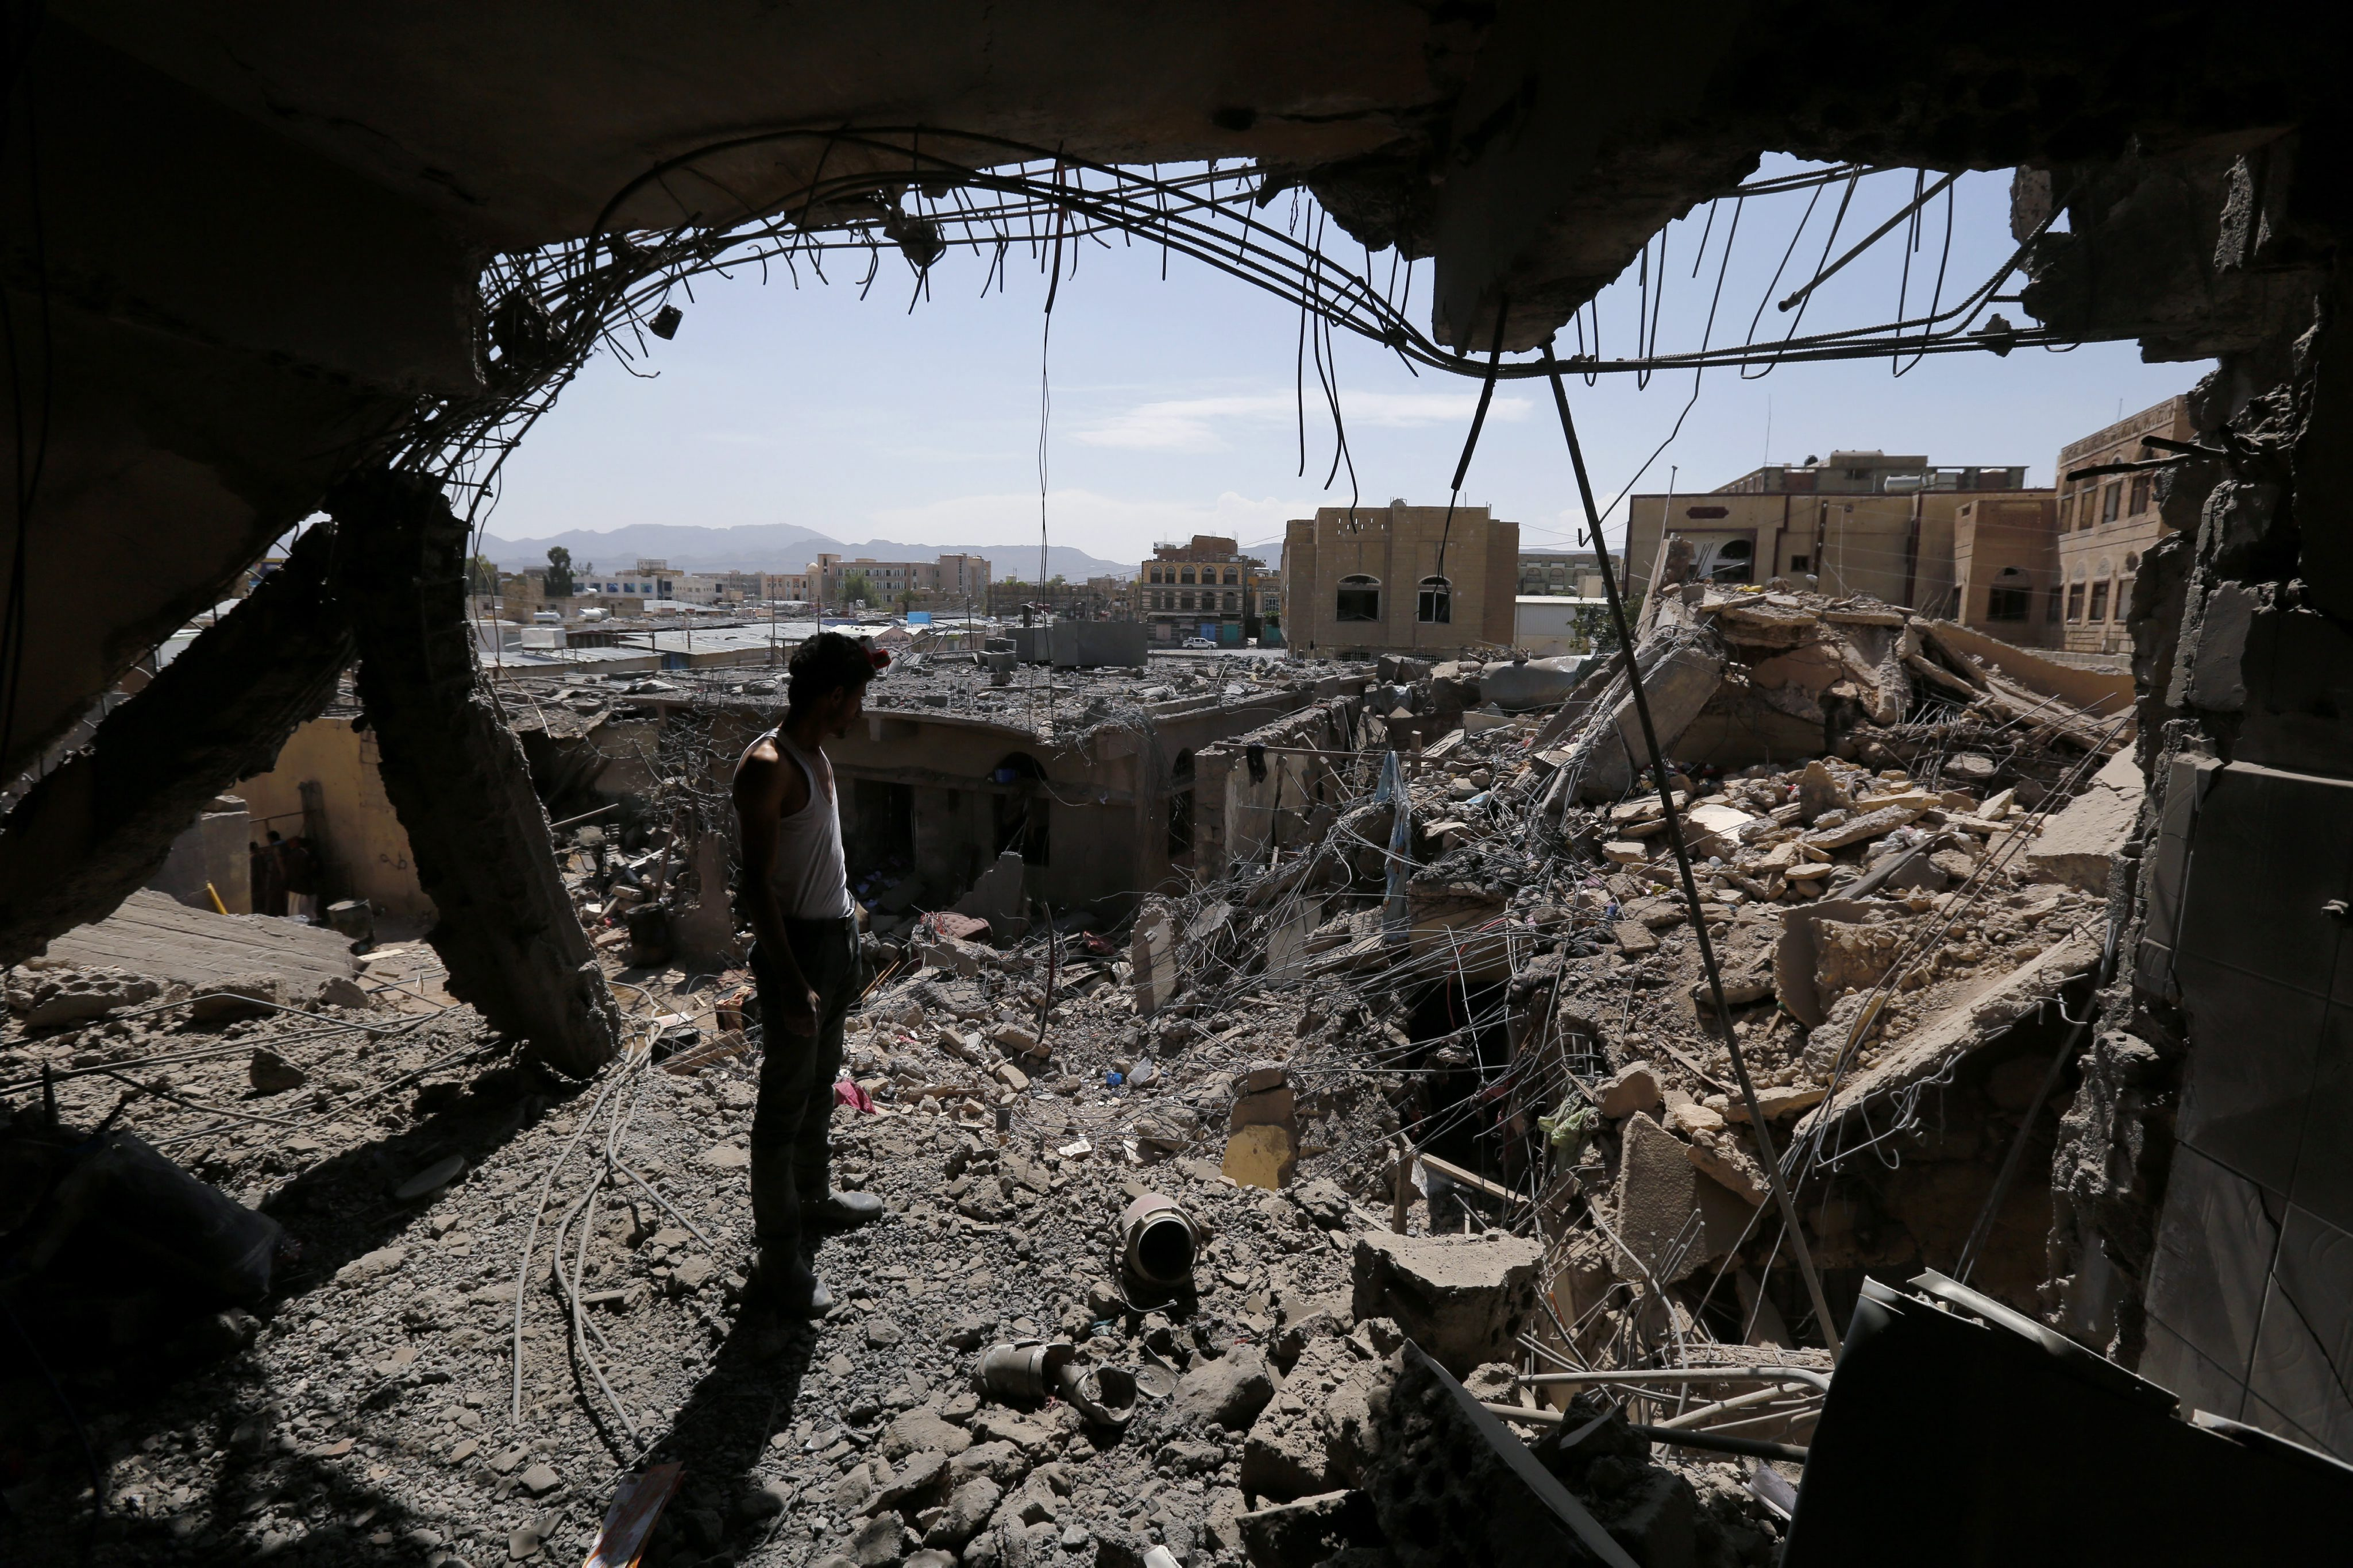 A house in Sana'a destroyed after a Saudi-led coalition airstrike in 2015.